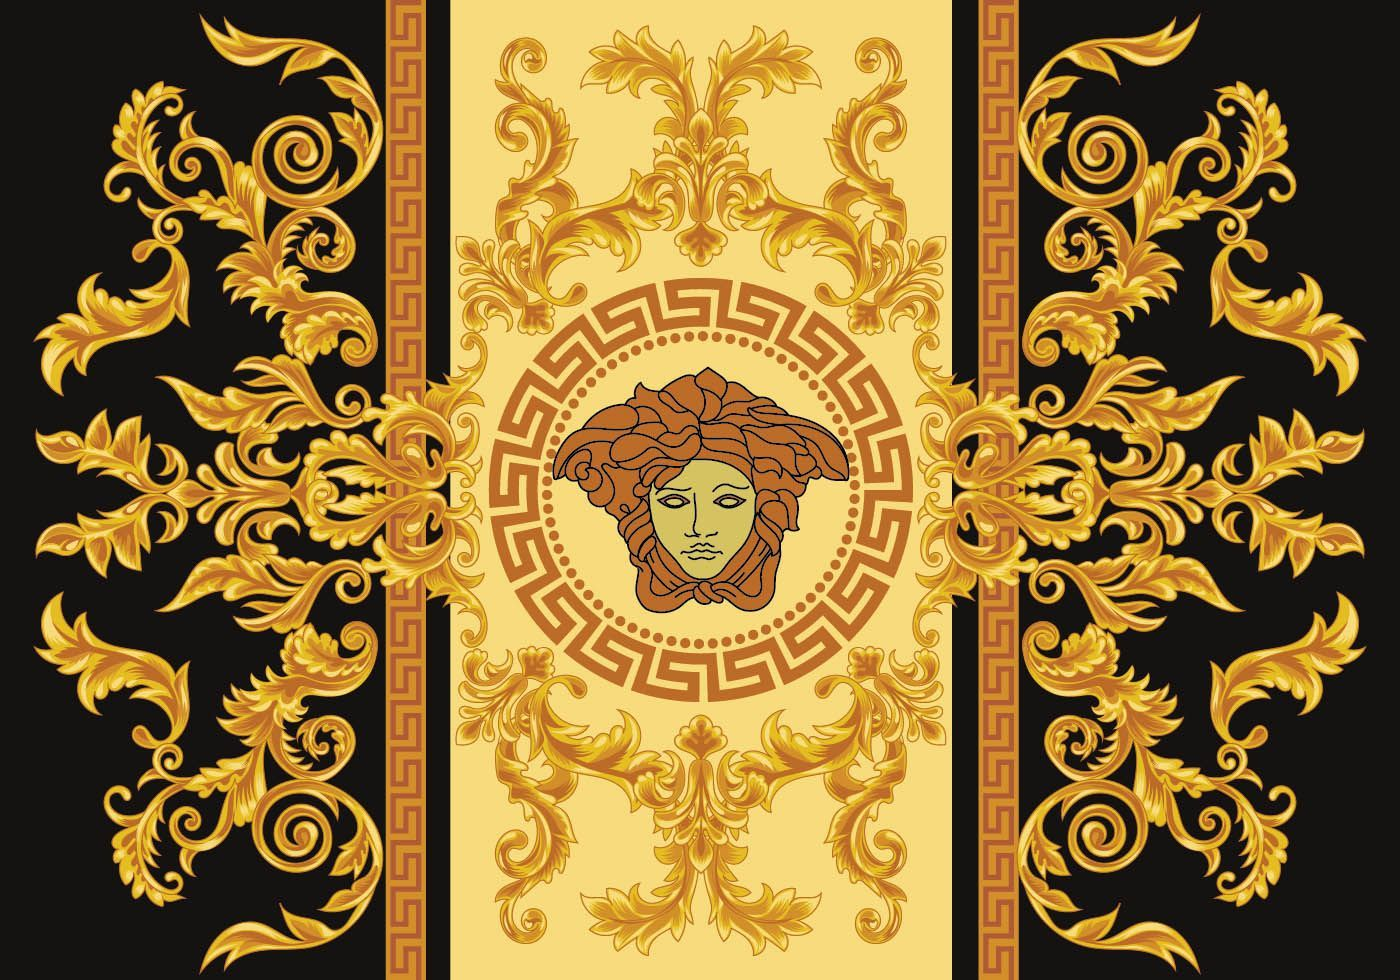 Meander ornament comes from Turkey Vector art, Versace